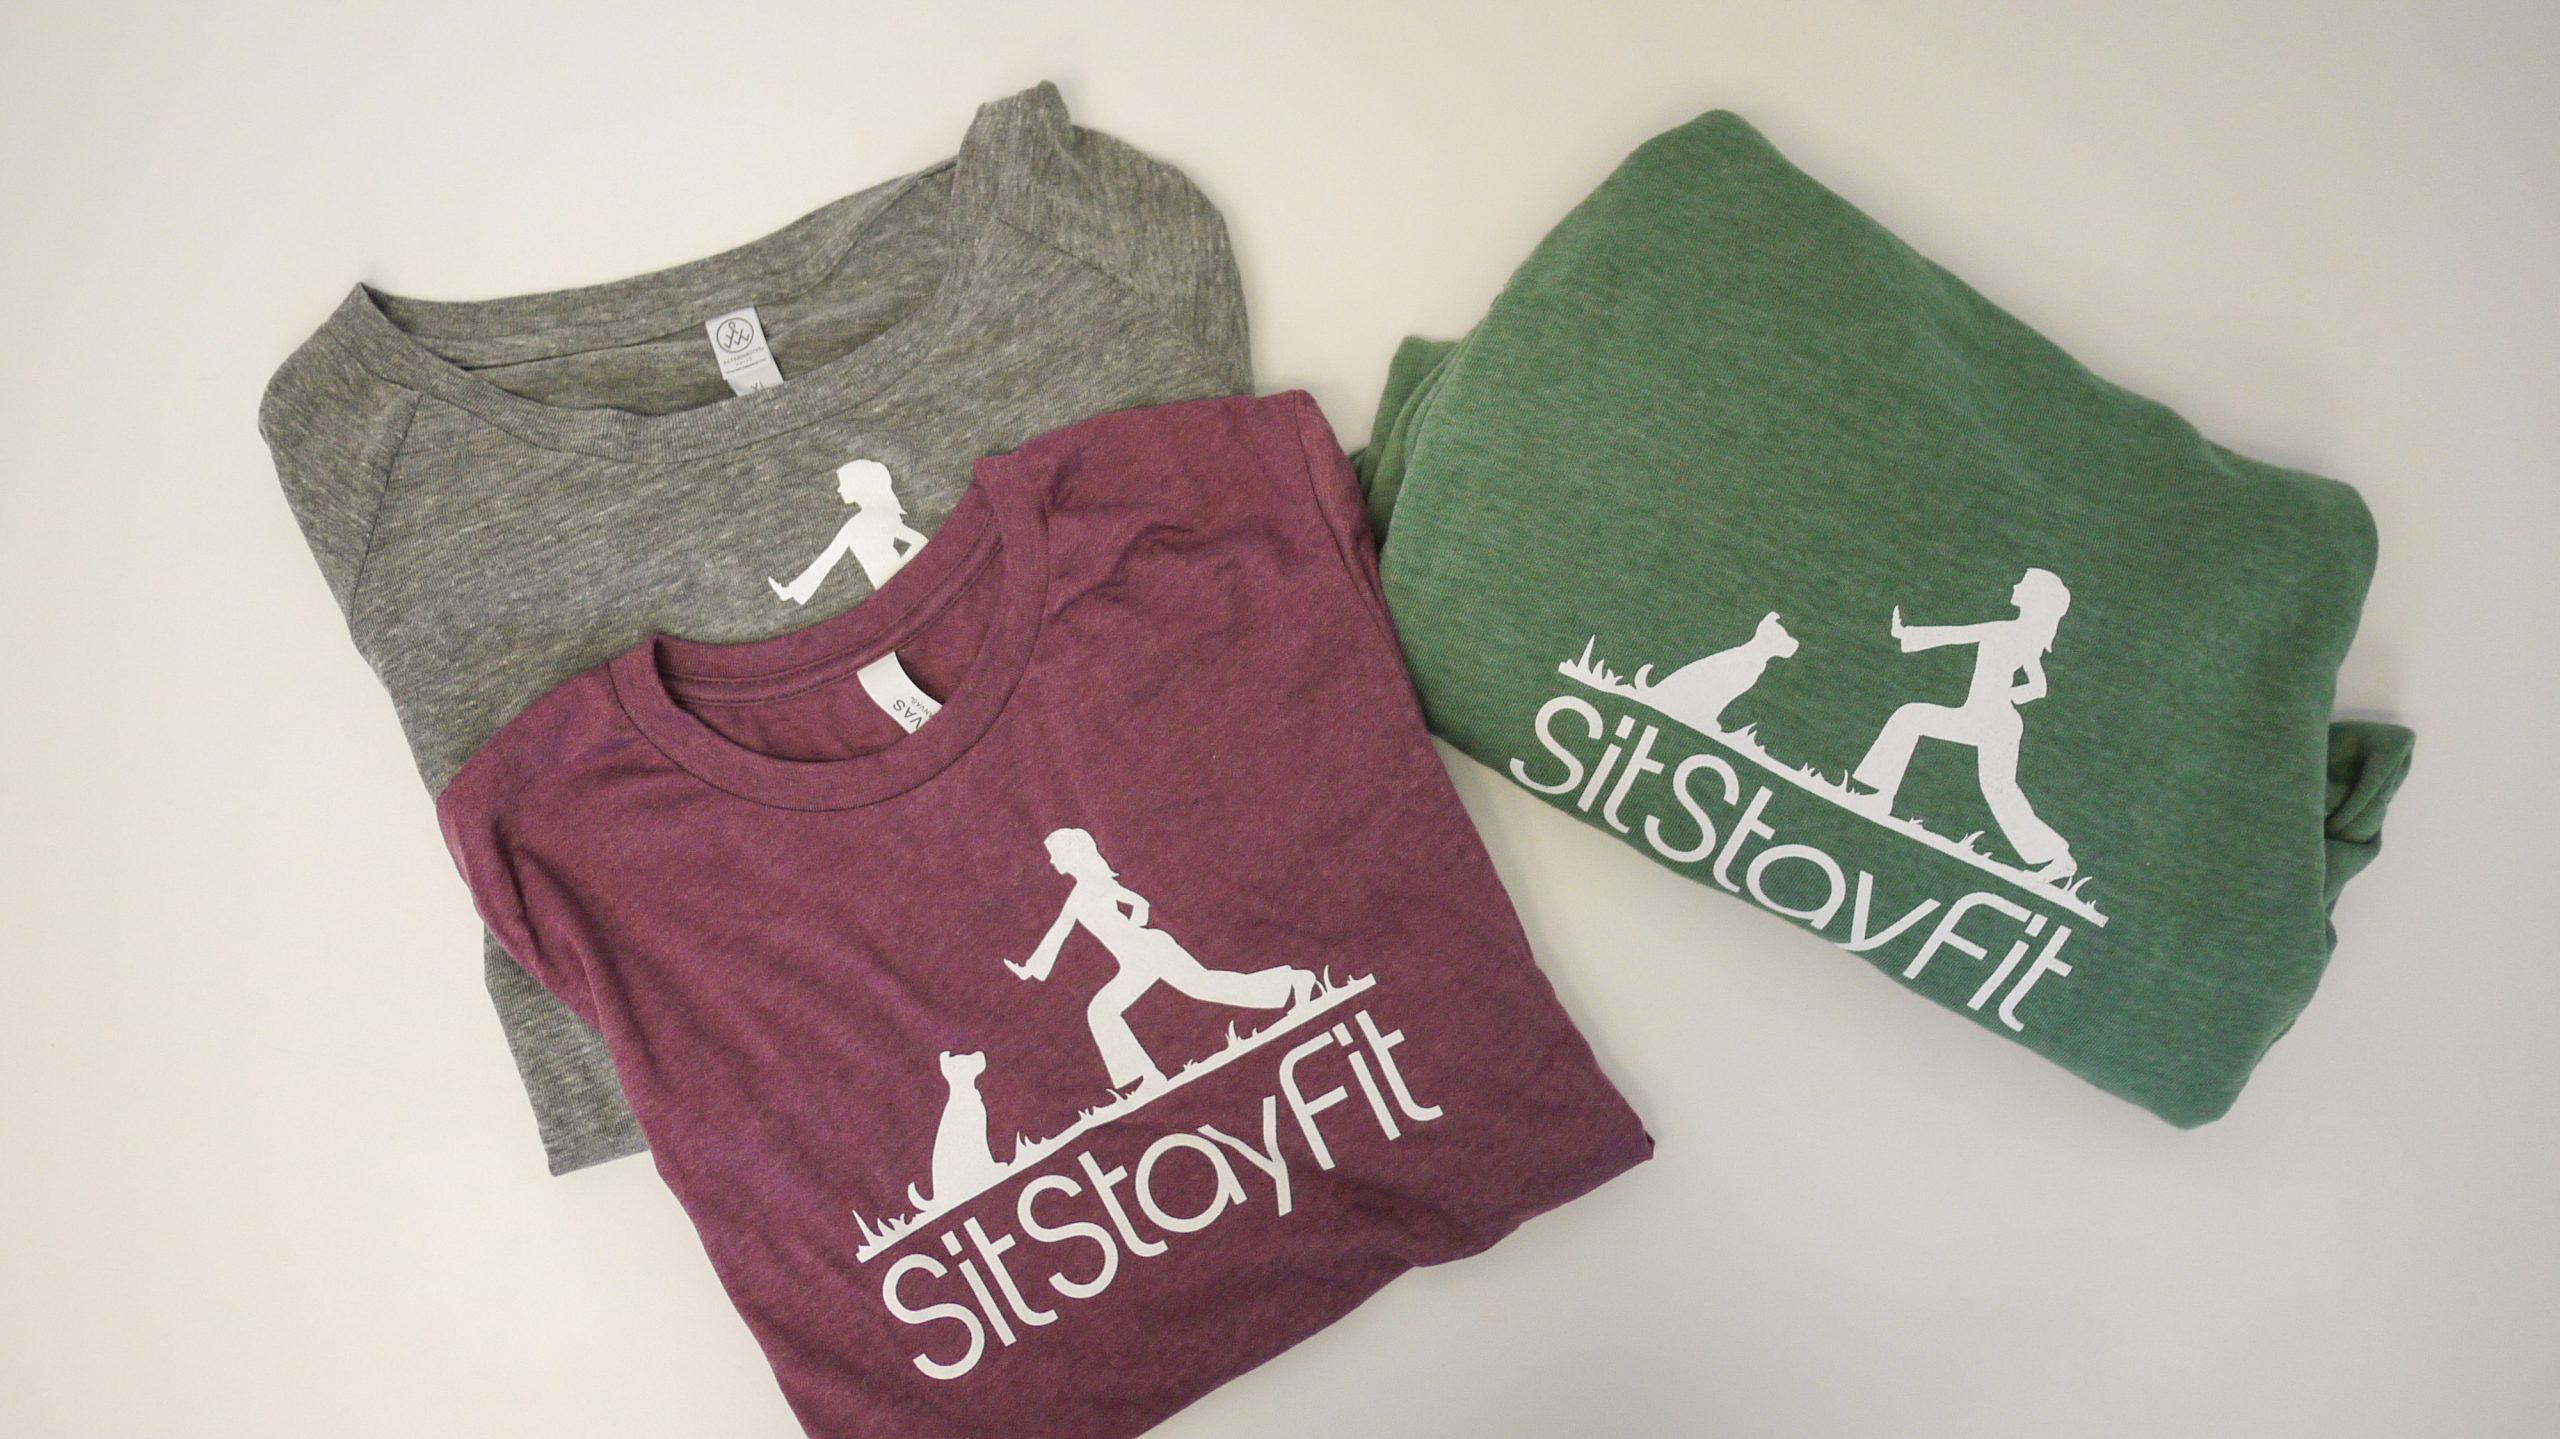 Sit Stay Fit logo on apparel